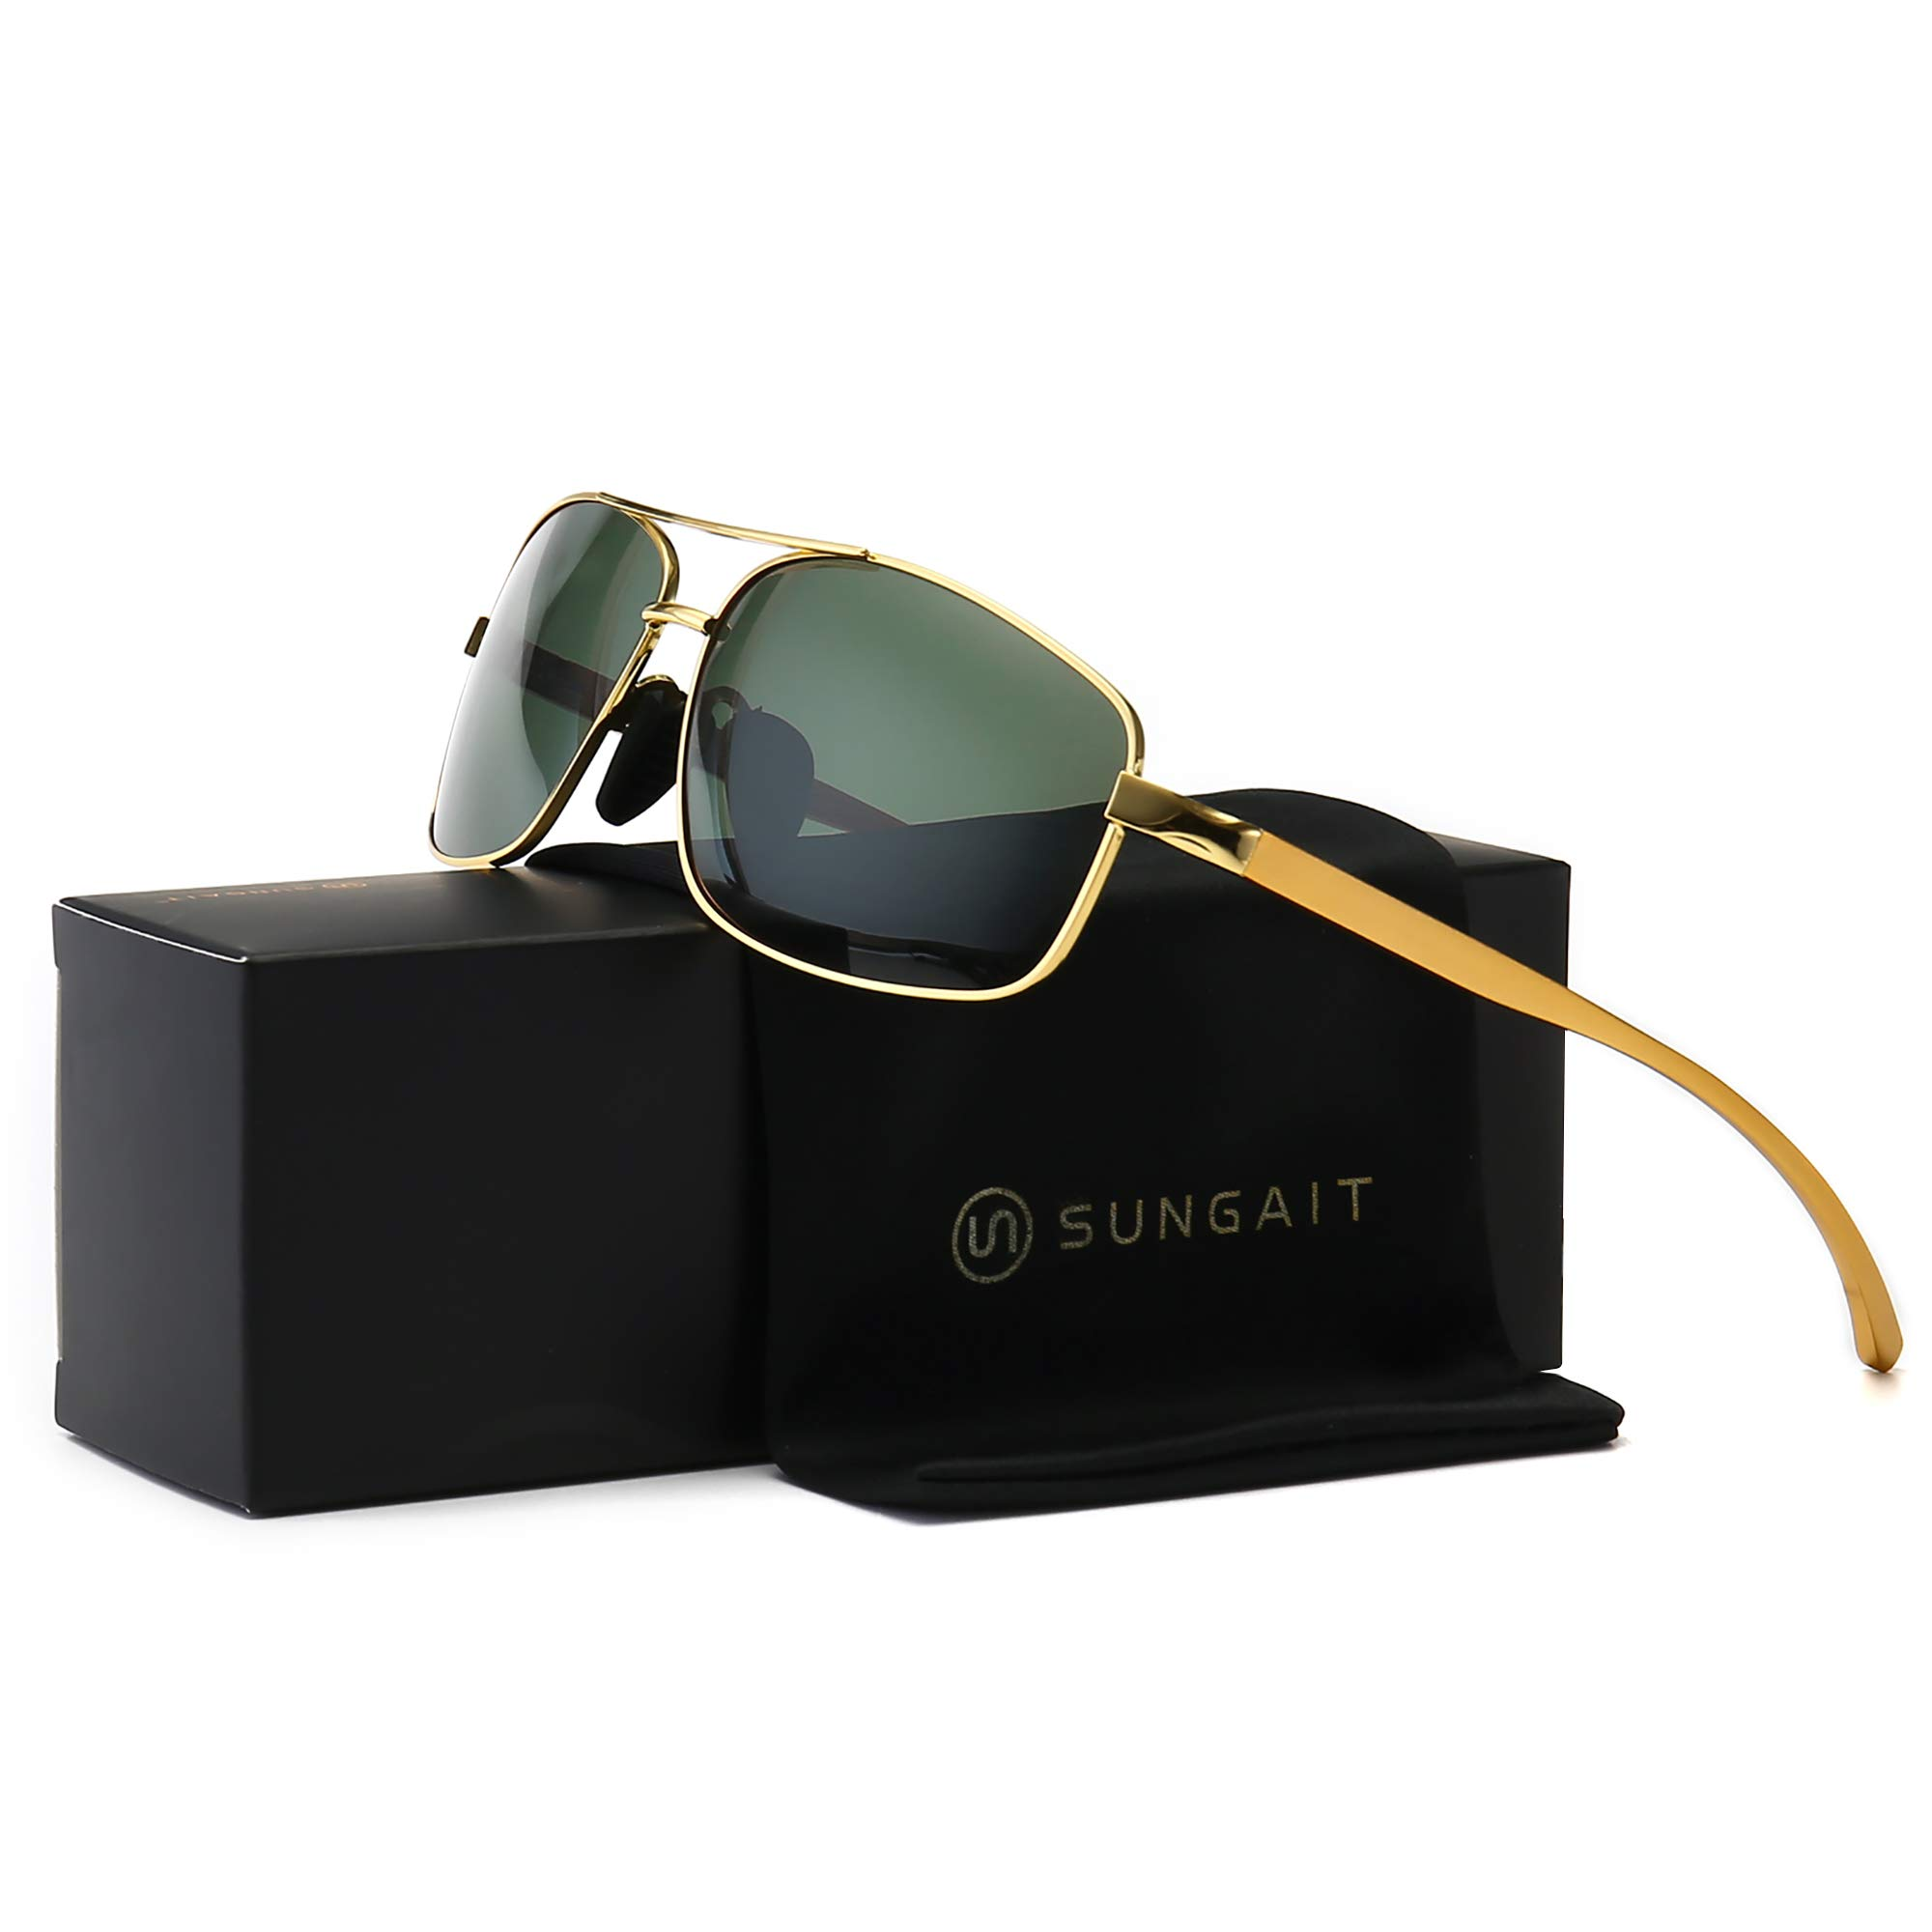 SUNGAIT Ultra Lightweight Rectangular Polarized Sunglasses UV400 Protection (Gold Frame Green Lens, 62) Metal Frame 2458 JKMLV by SUNGAIT